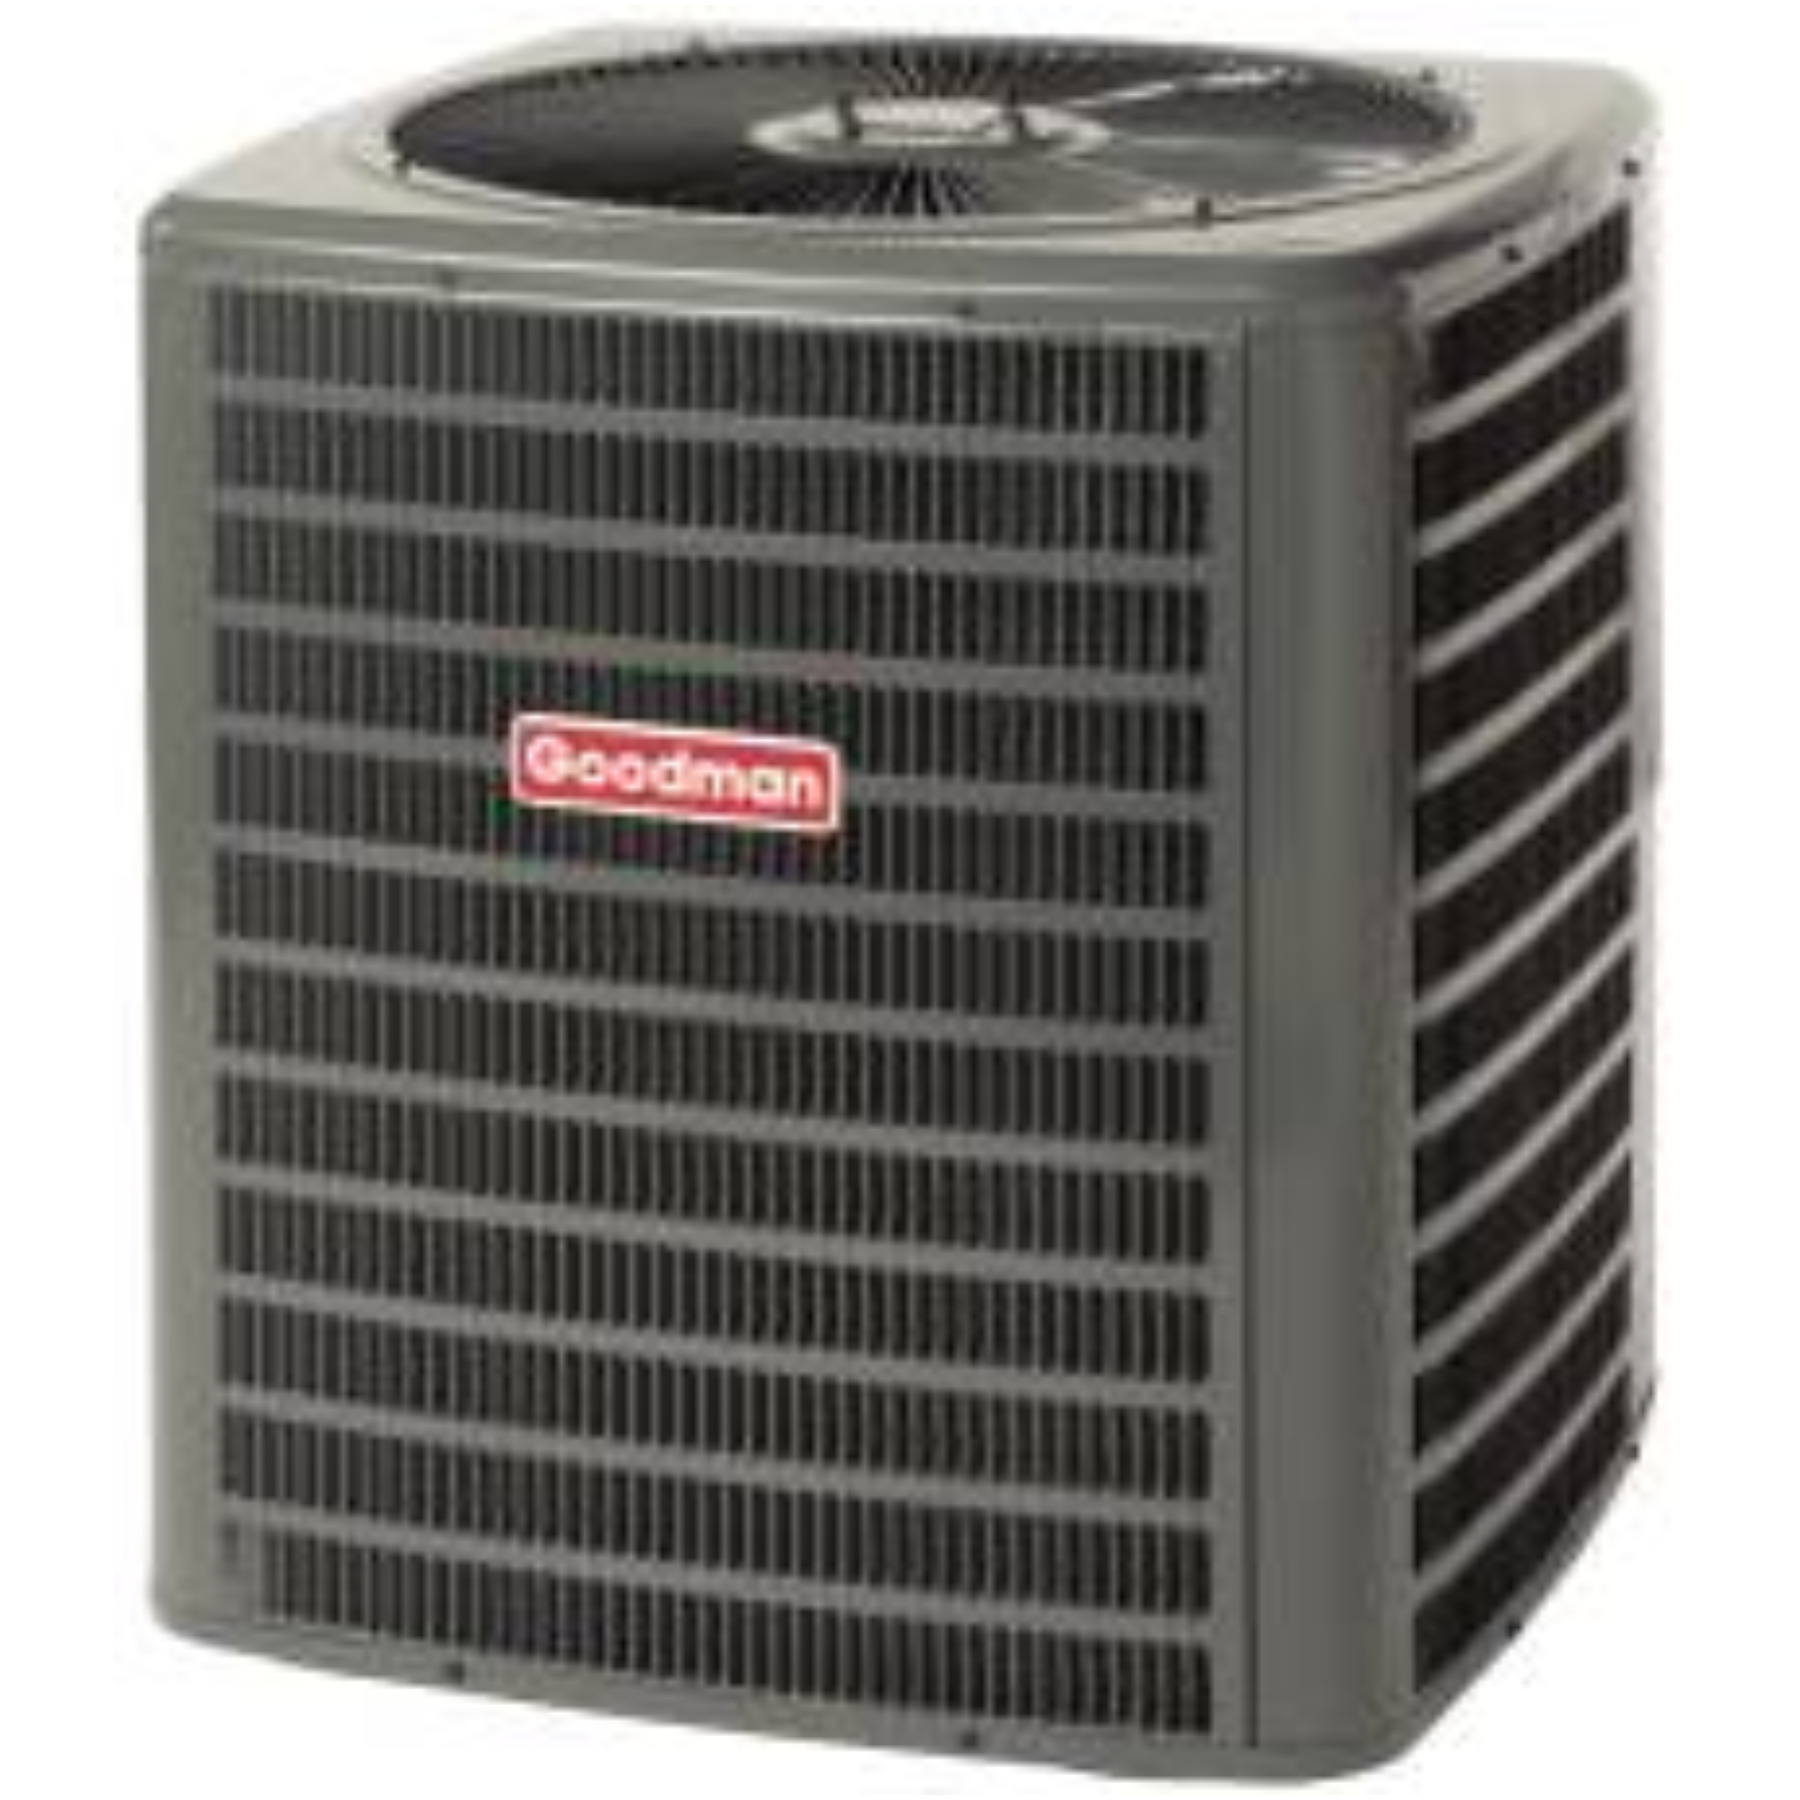 GOODMAN� 13 SEER R-410A HEAT PUMP, 3.0 TON, 34,000 / 35,000 BTU, 208 / 230 VOLTS, 35 AMPS